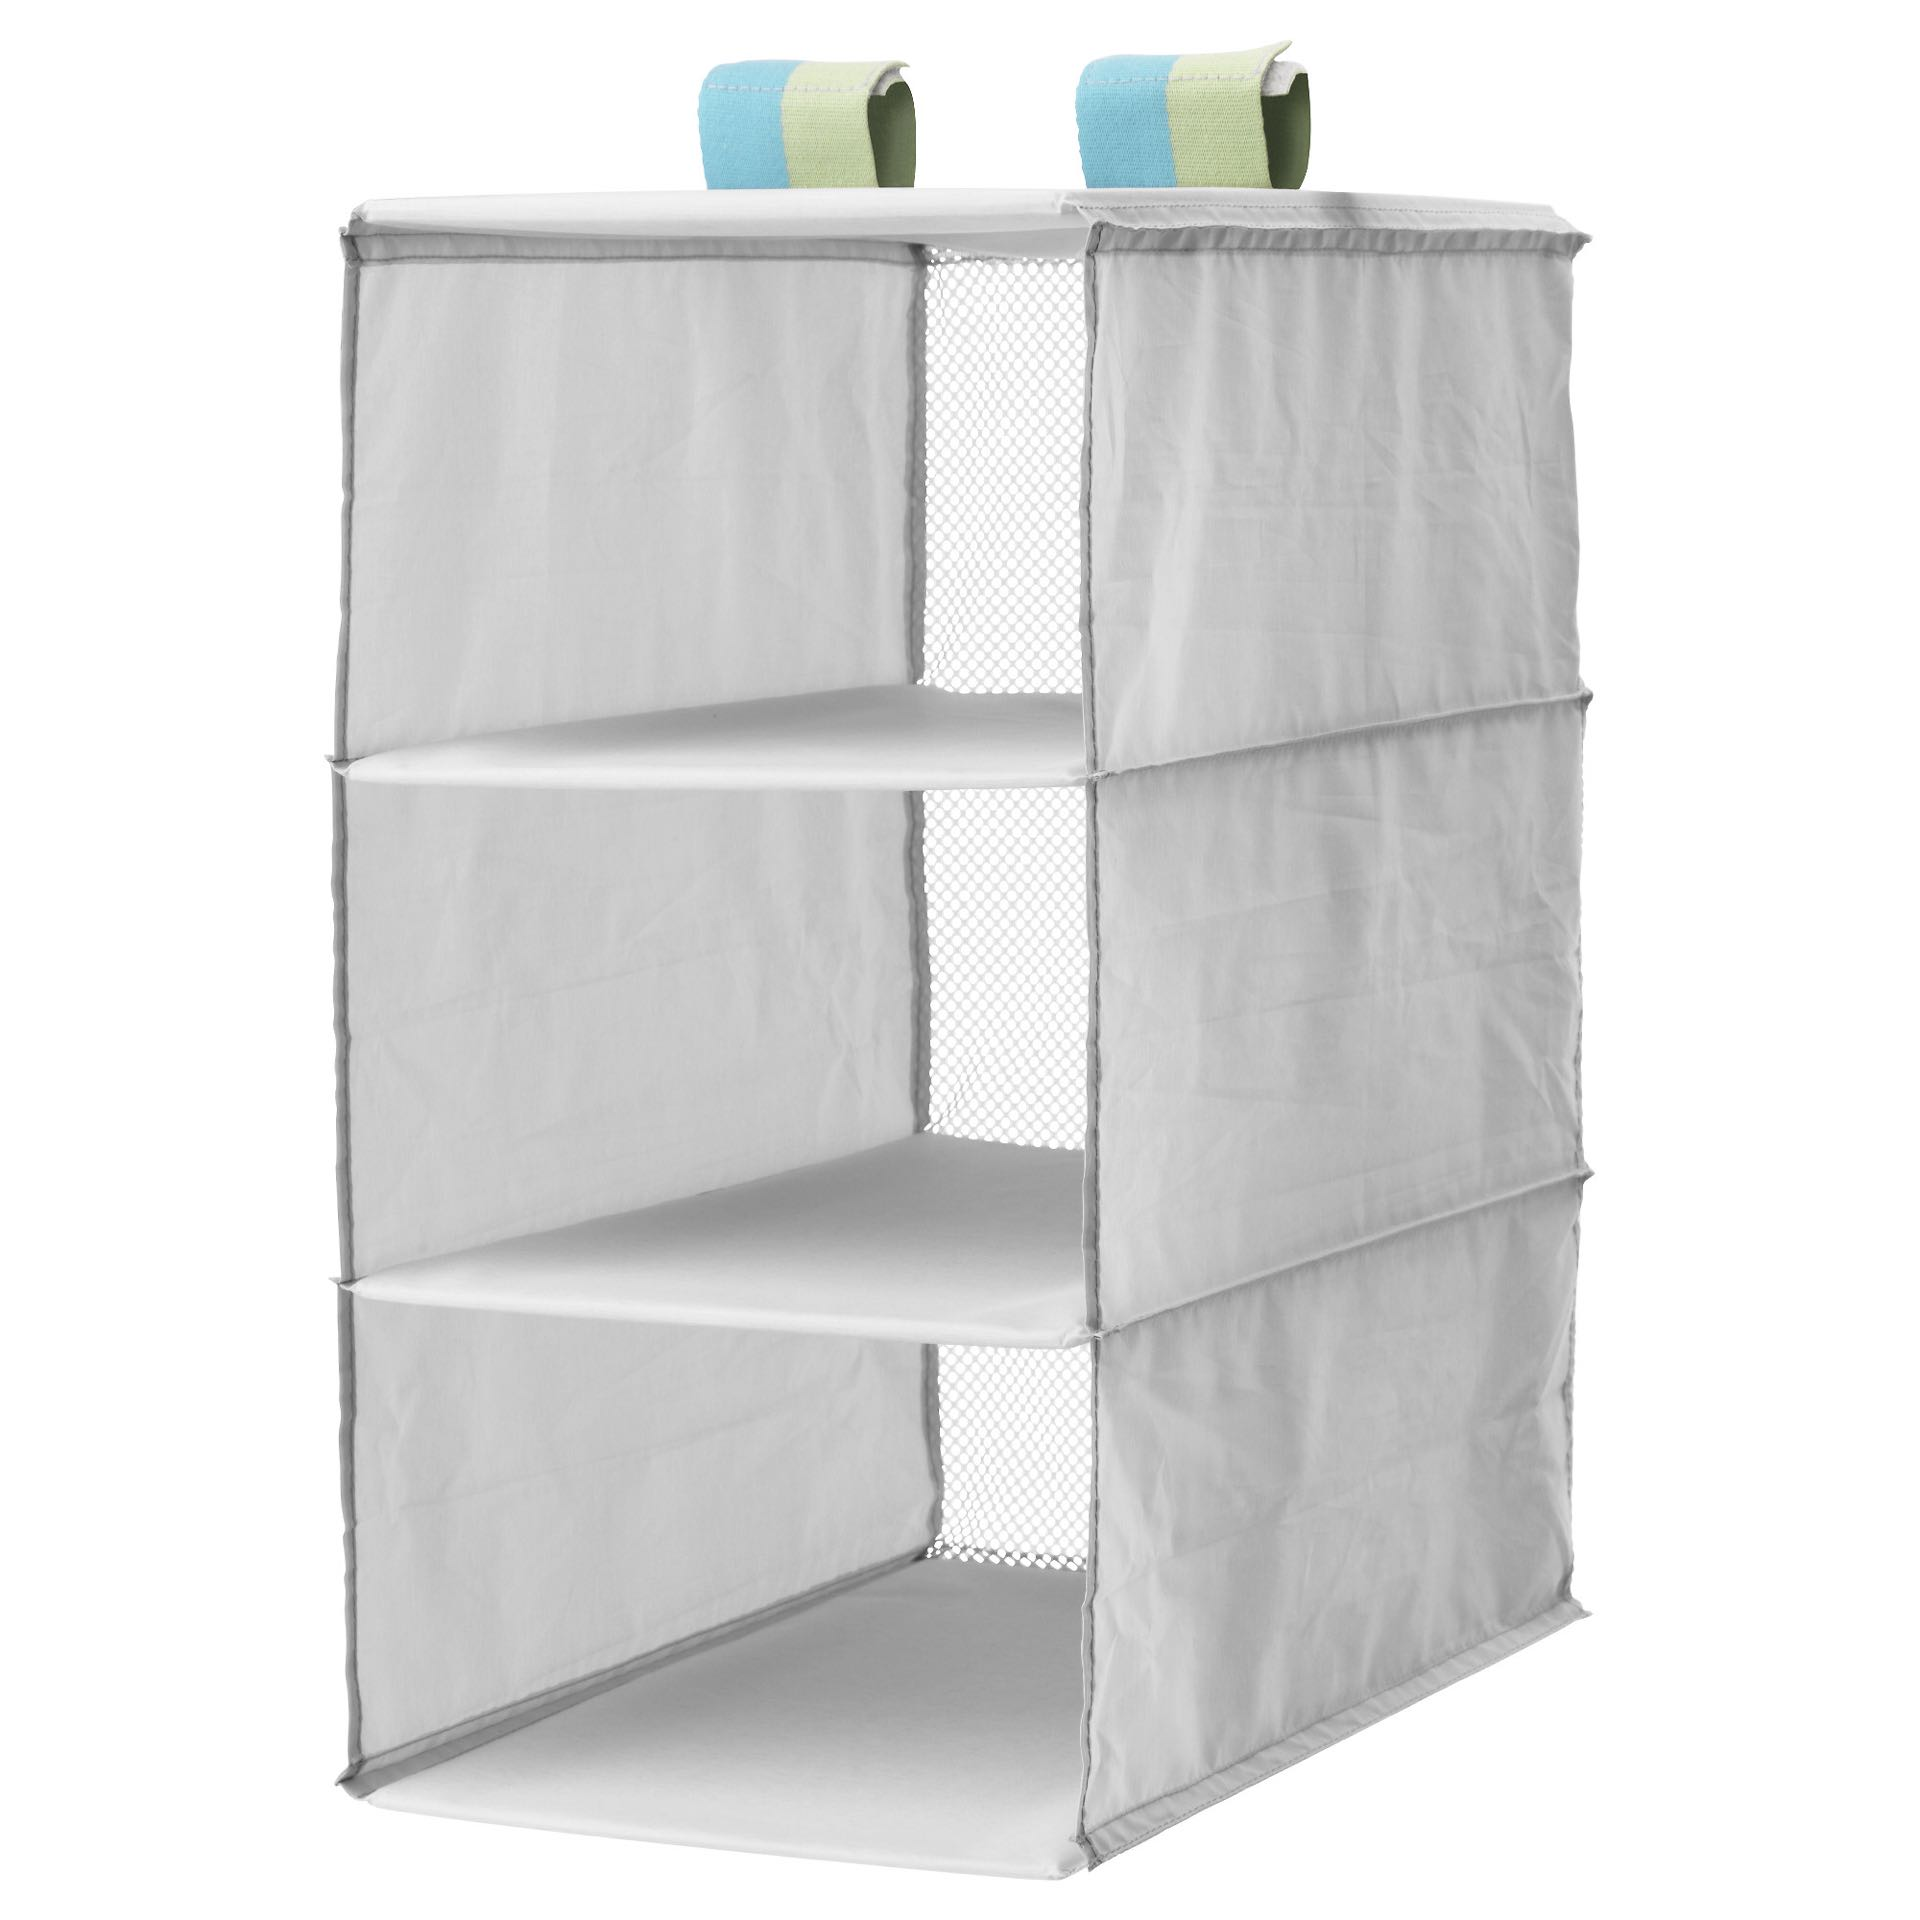 SLÄKTING hanging organizer with 3 pockets. ($7)